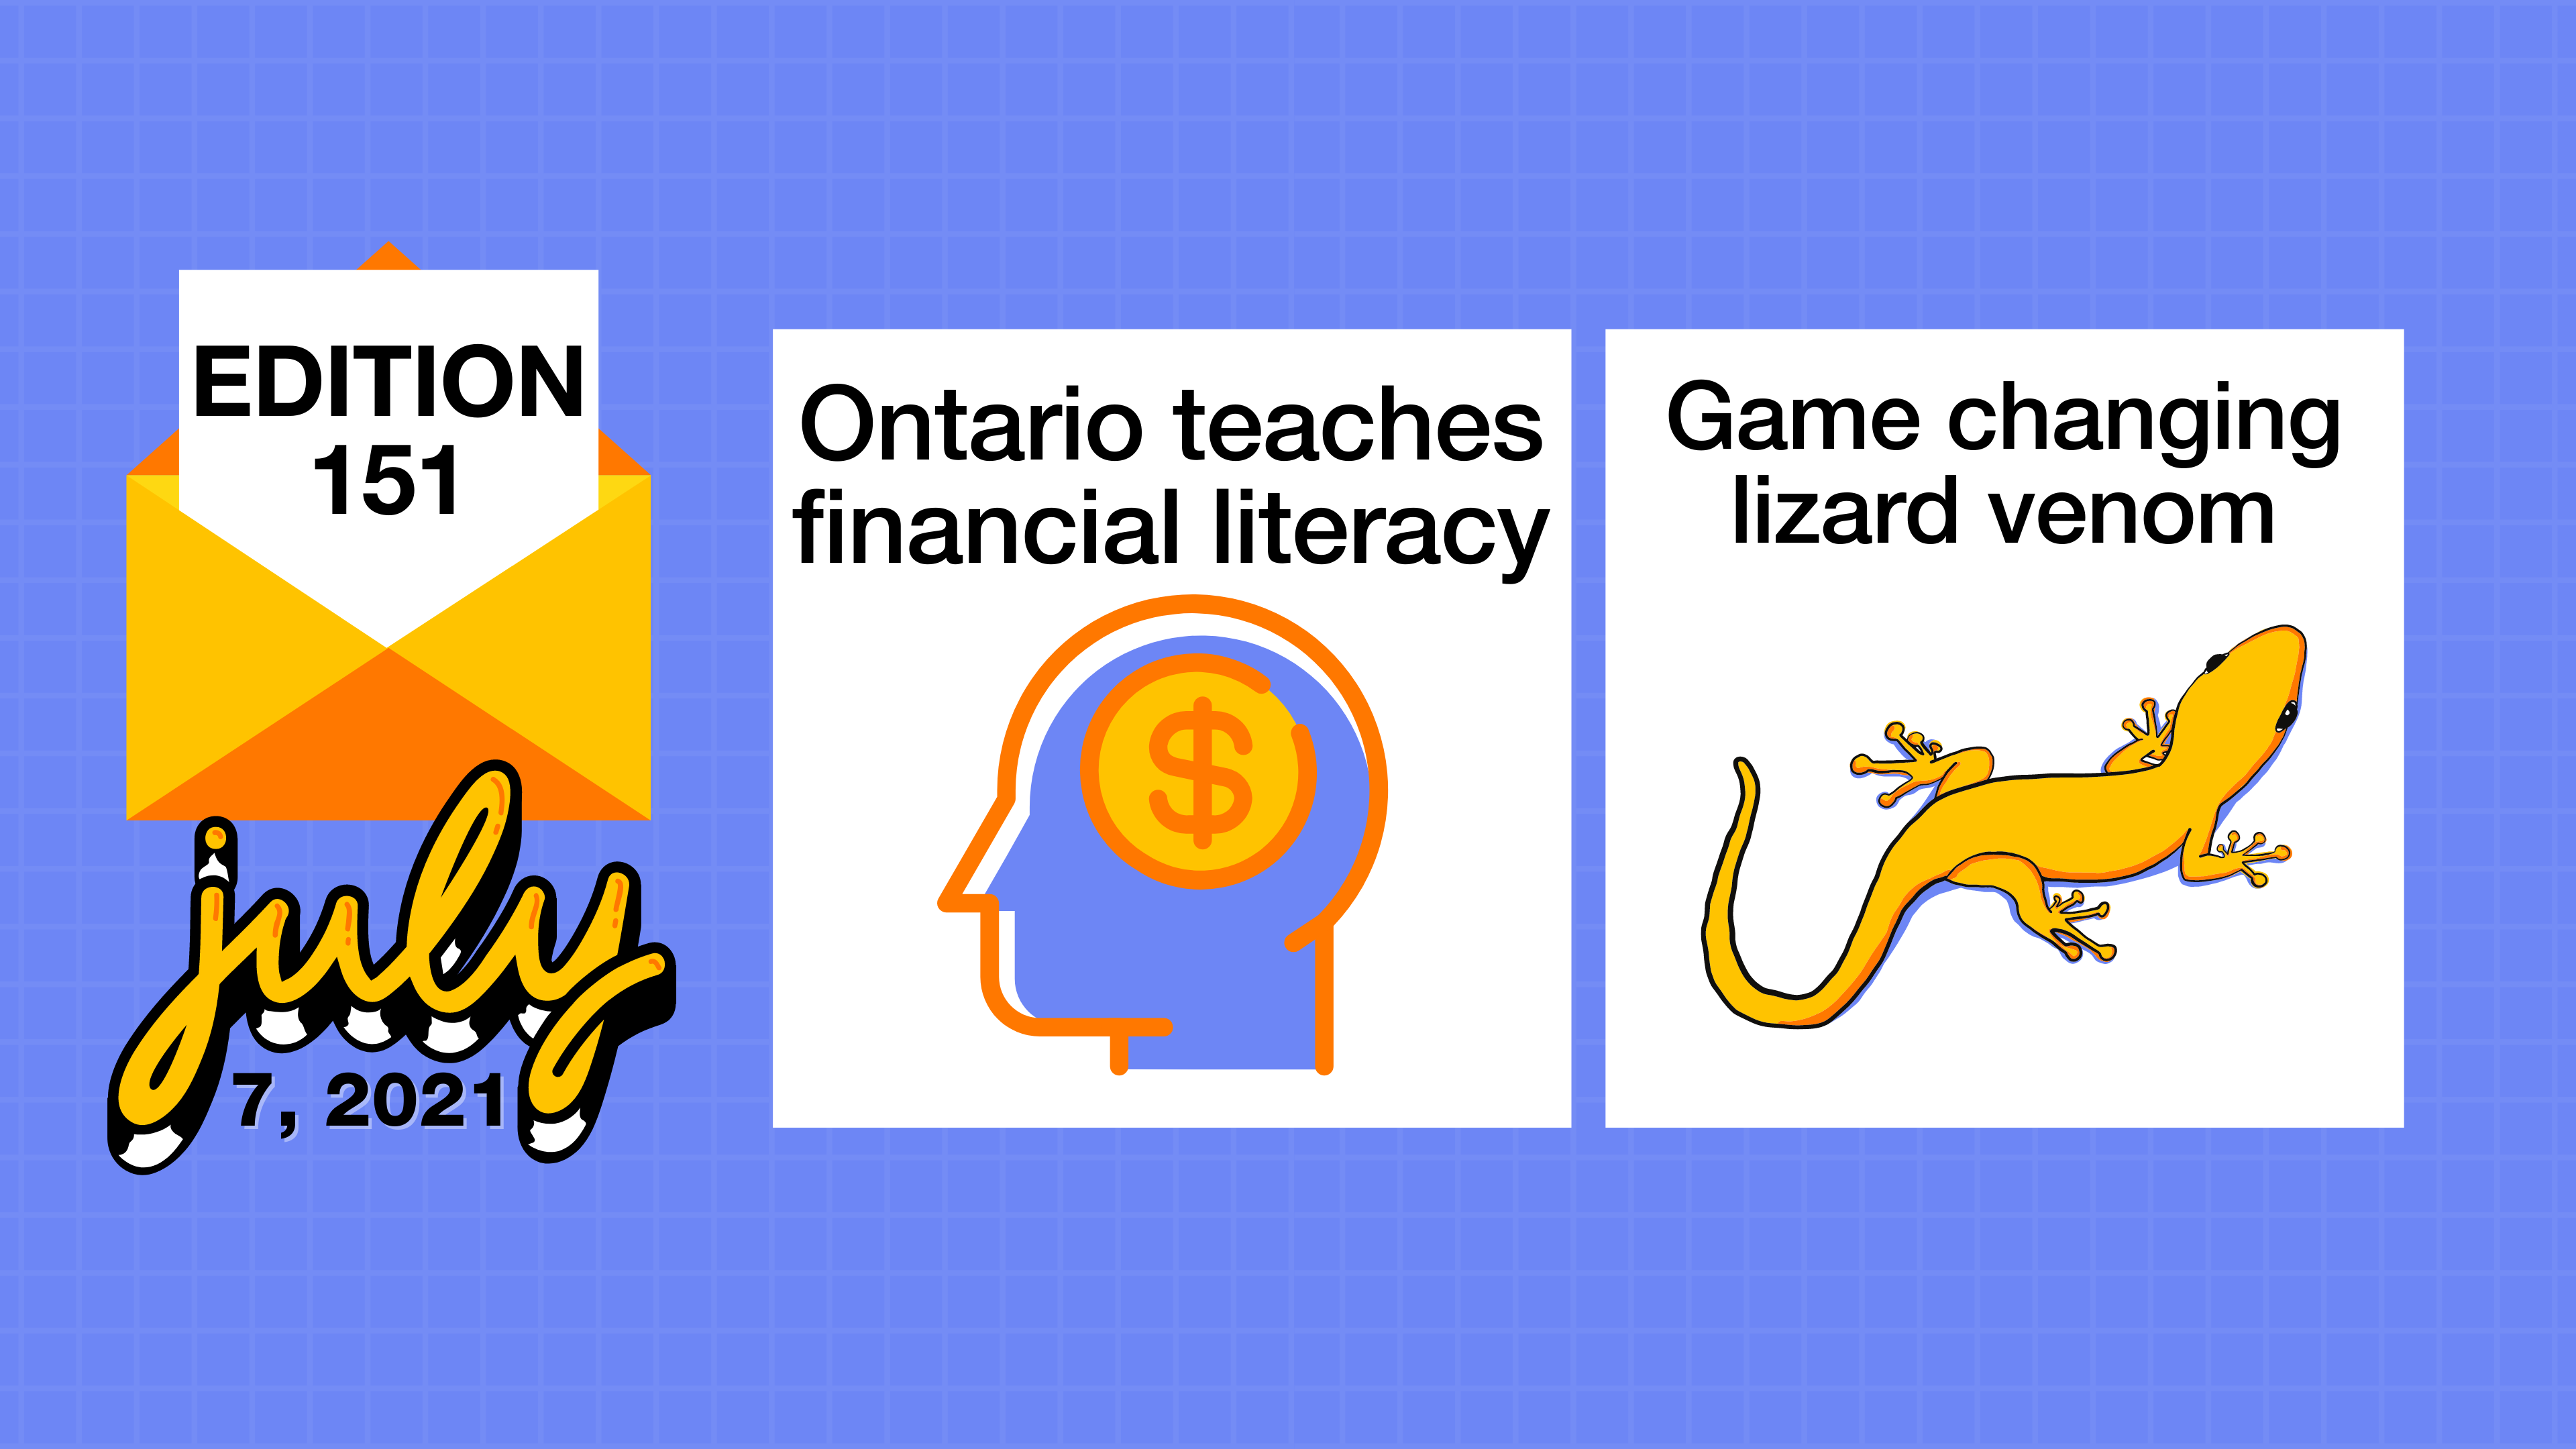 Ontario teaches financial literacy and game changing lizard venom